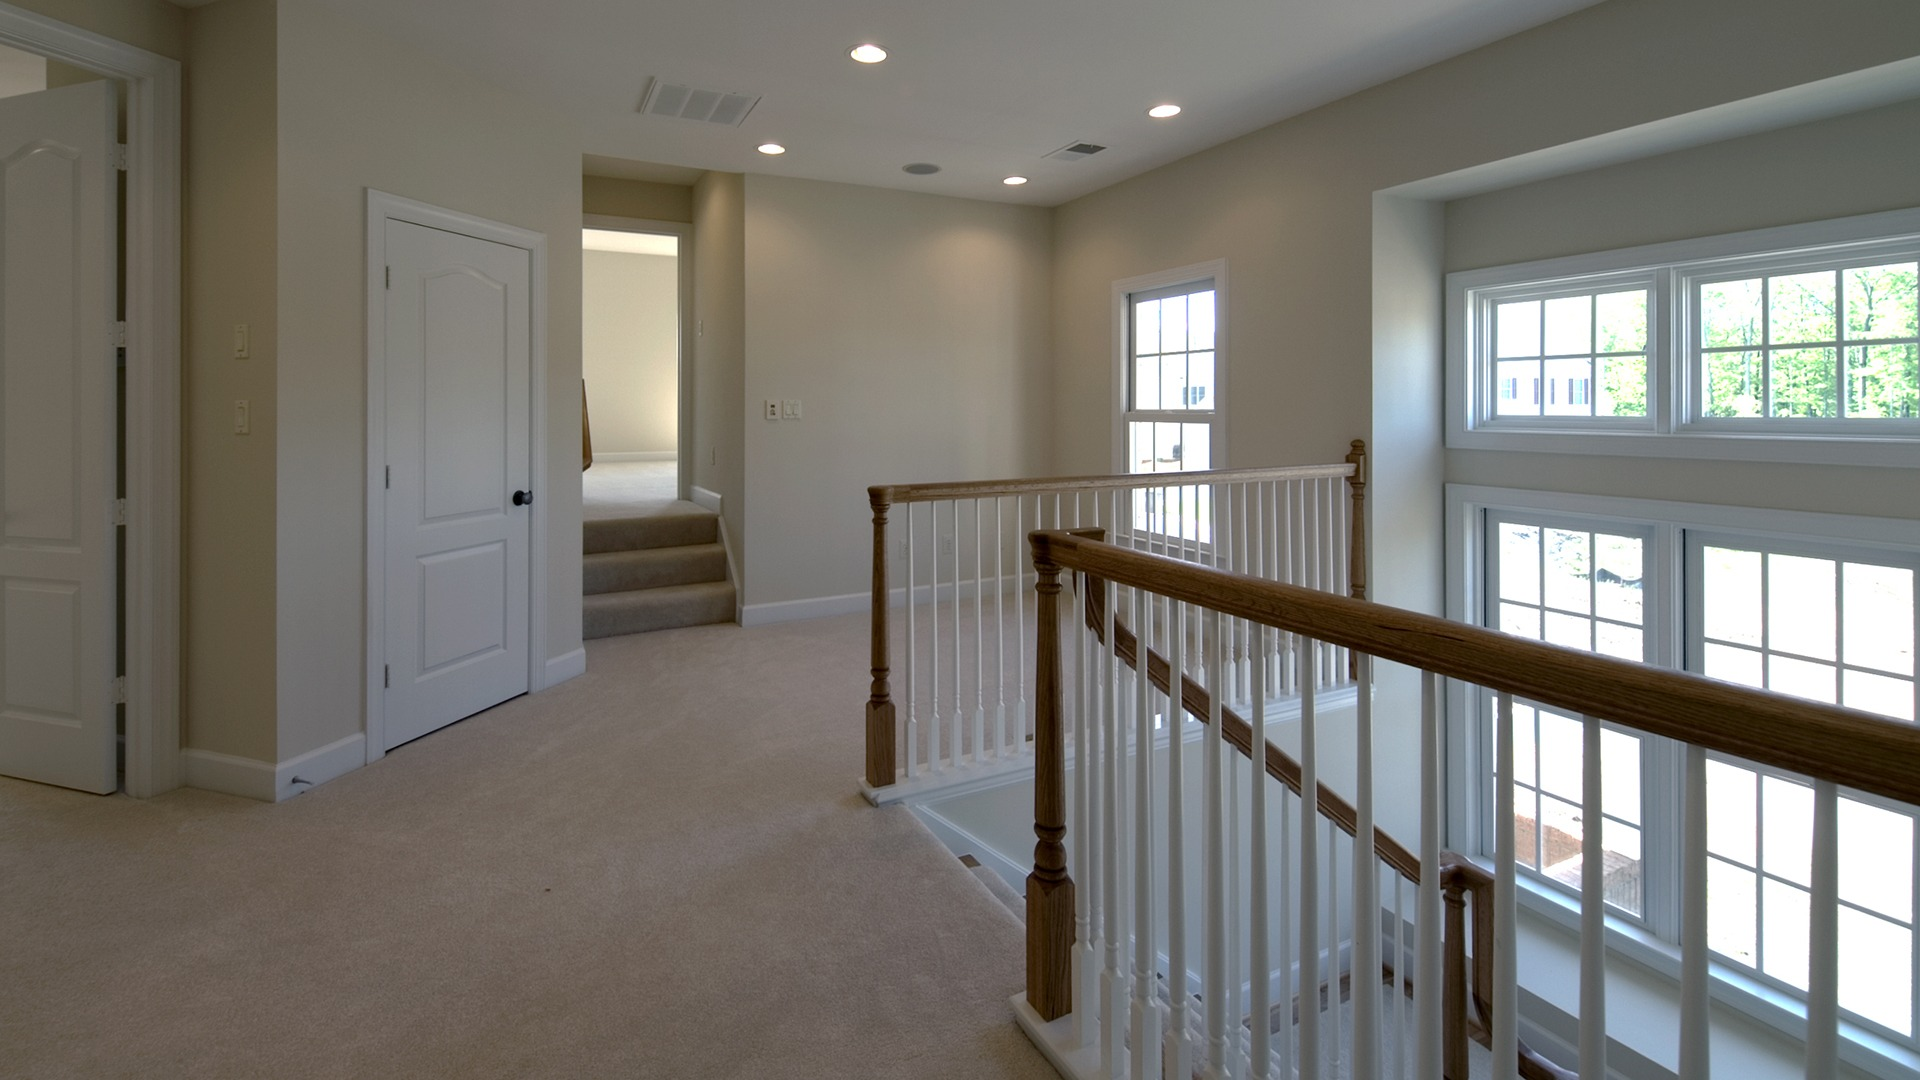 The Loft in the Brentwood model in Brambleton. Some options shown.